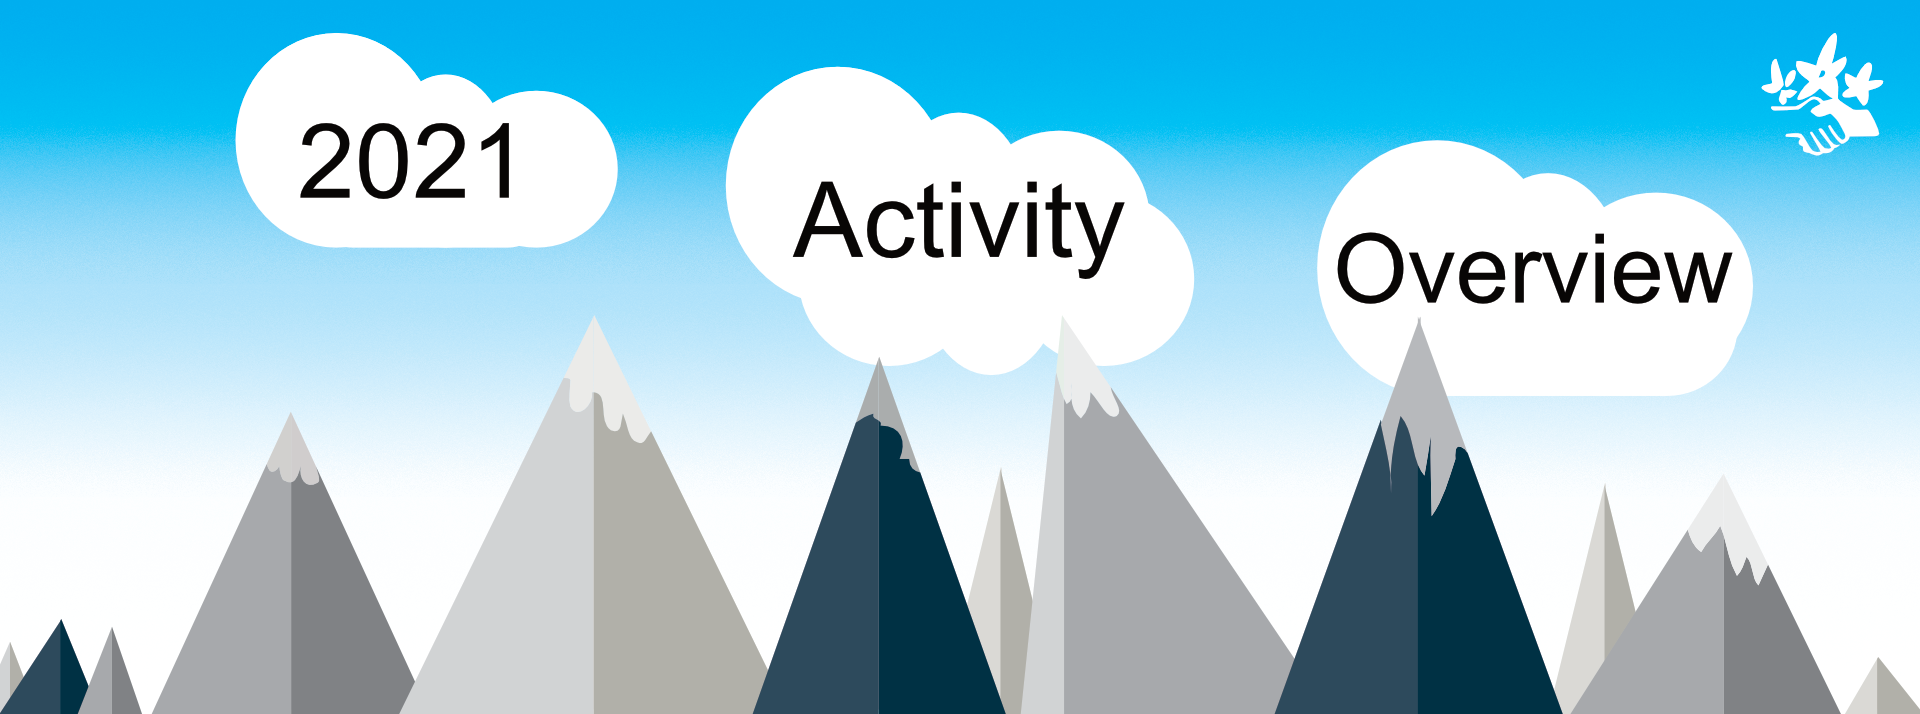 2021 Activity Overview